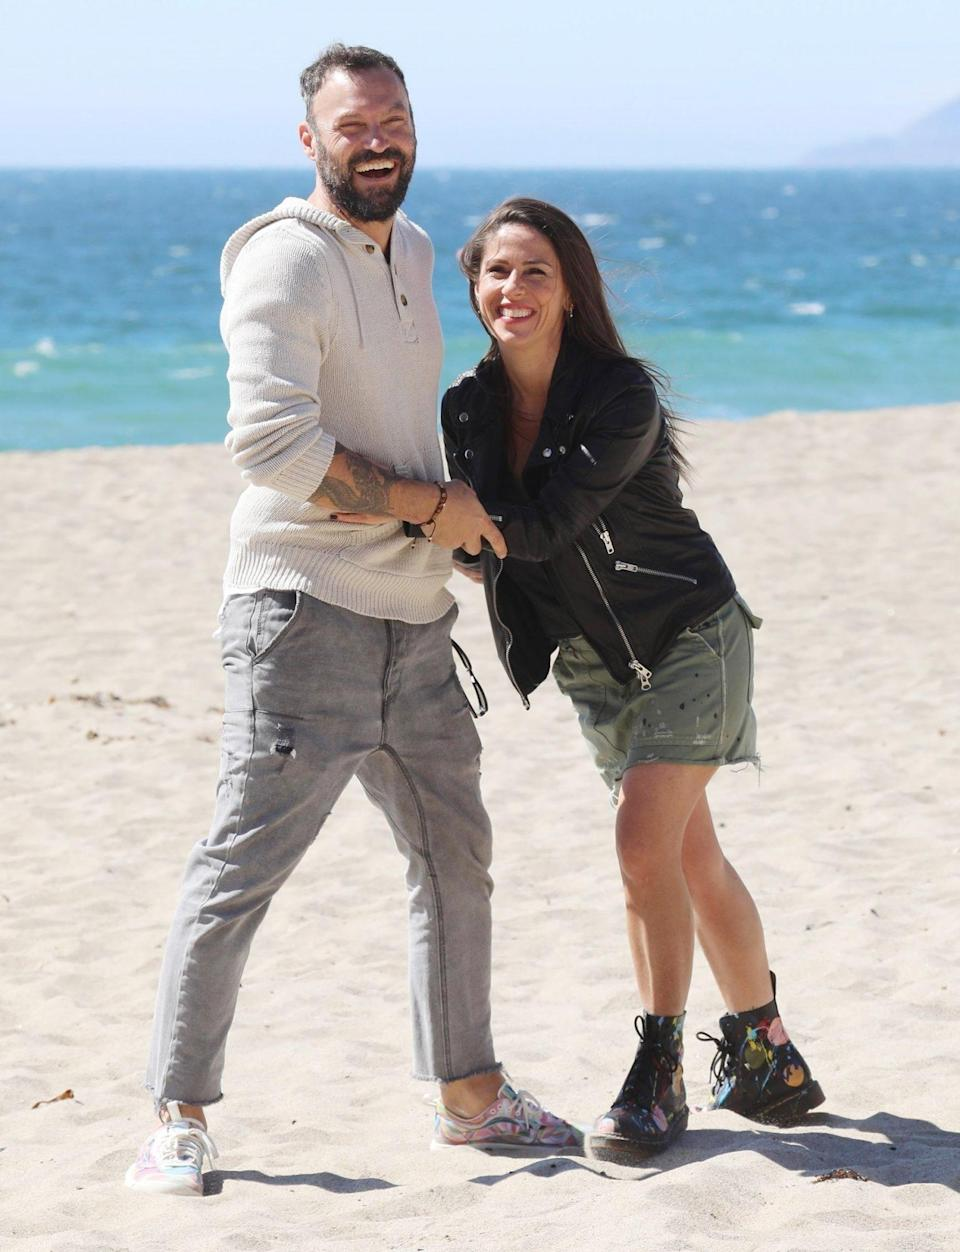 <p>Longtime pals Soleil Moon Frye and Brian Austin Green goof around at the beach on Monday in Malibu.</p>